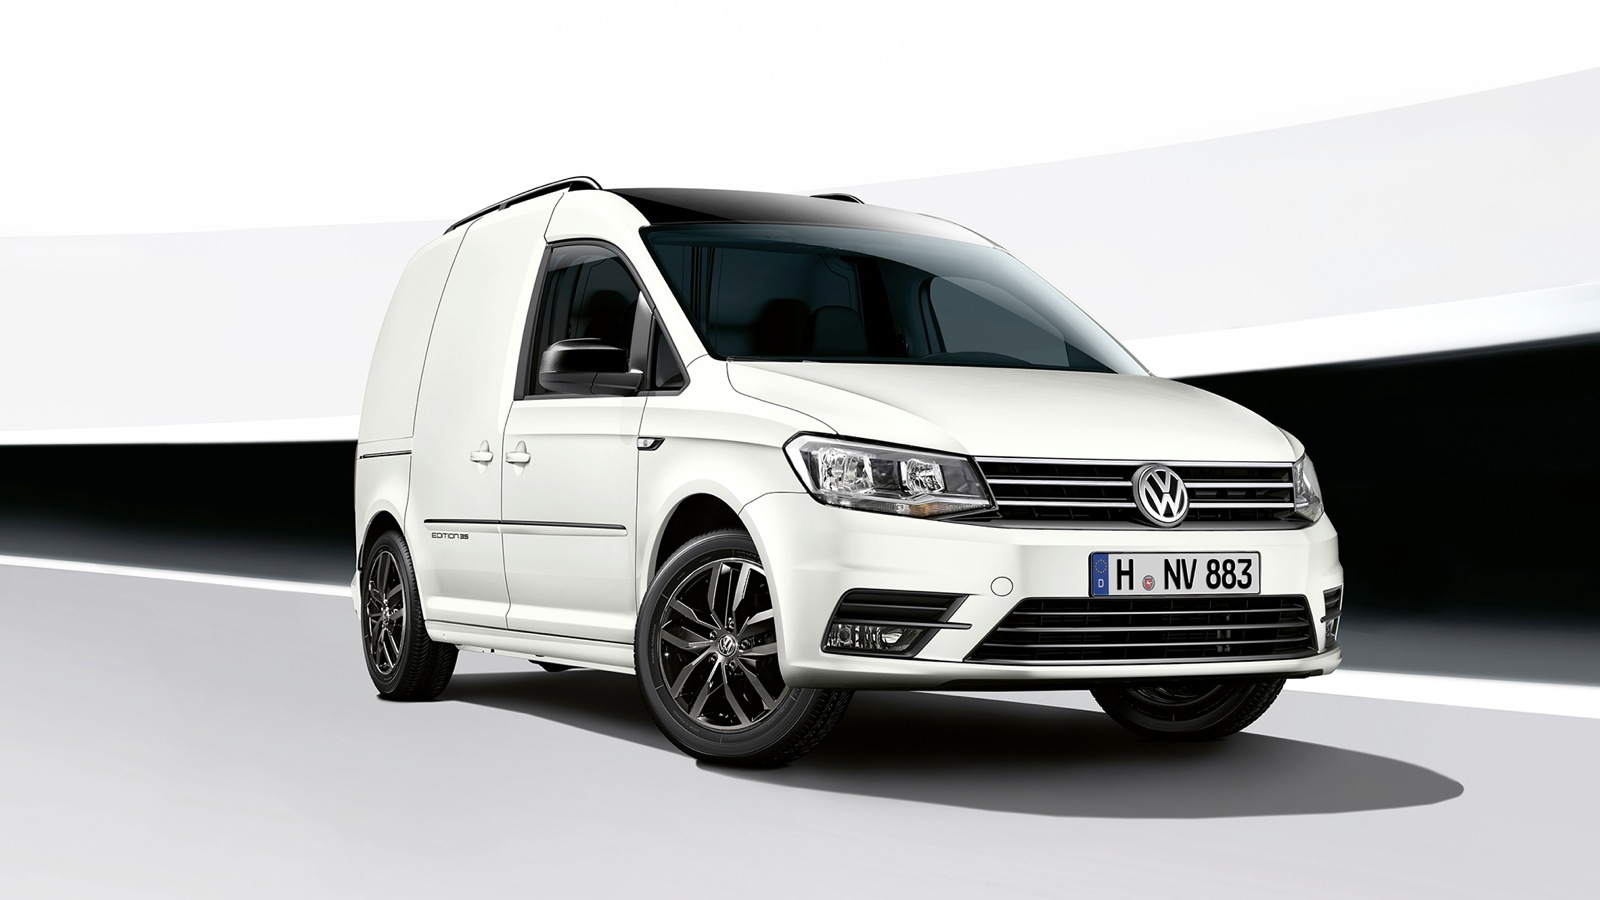 2017 Volkswagen Caddy Edition 35 unveiled - photos | CarAdvice